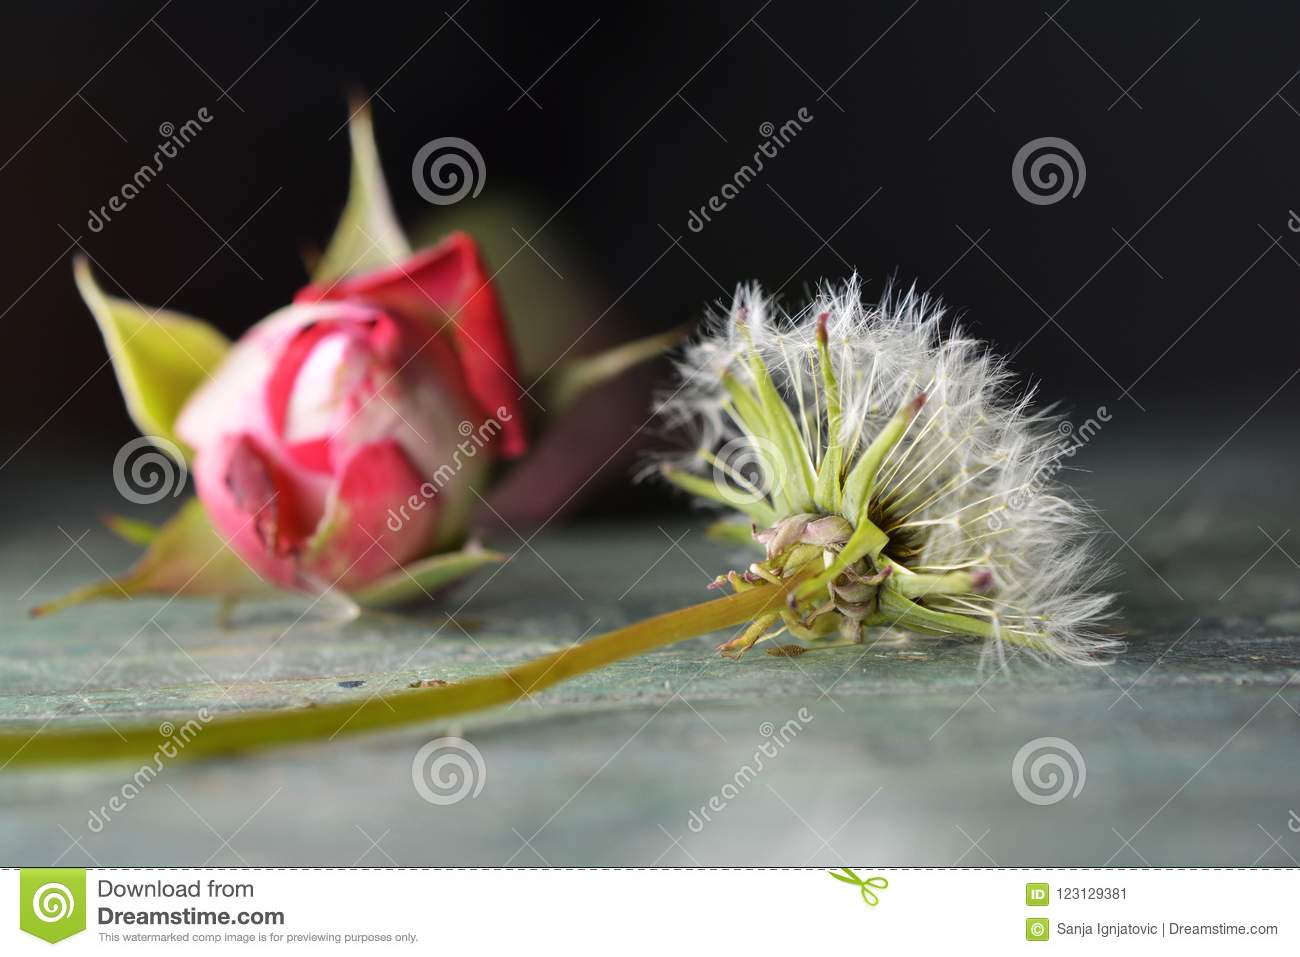 A dandelion and a rose